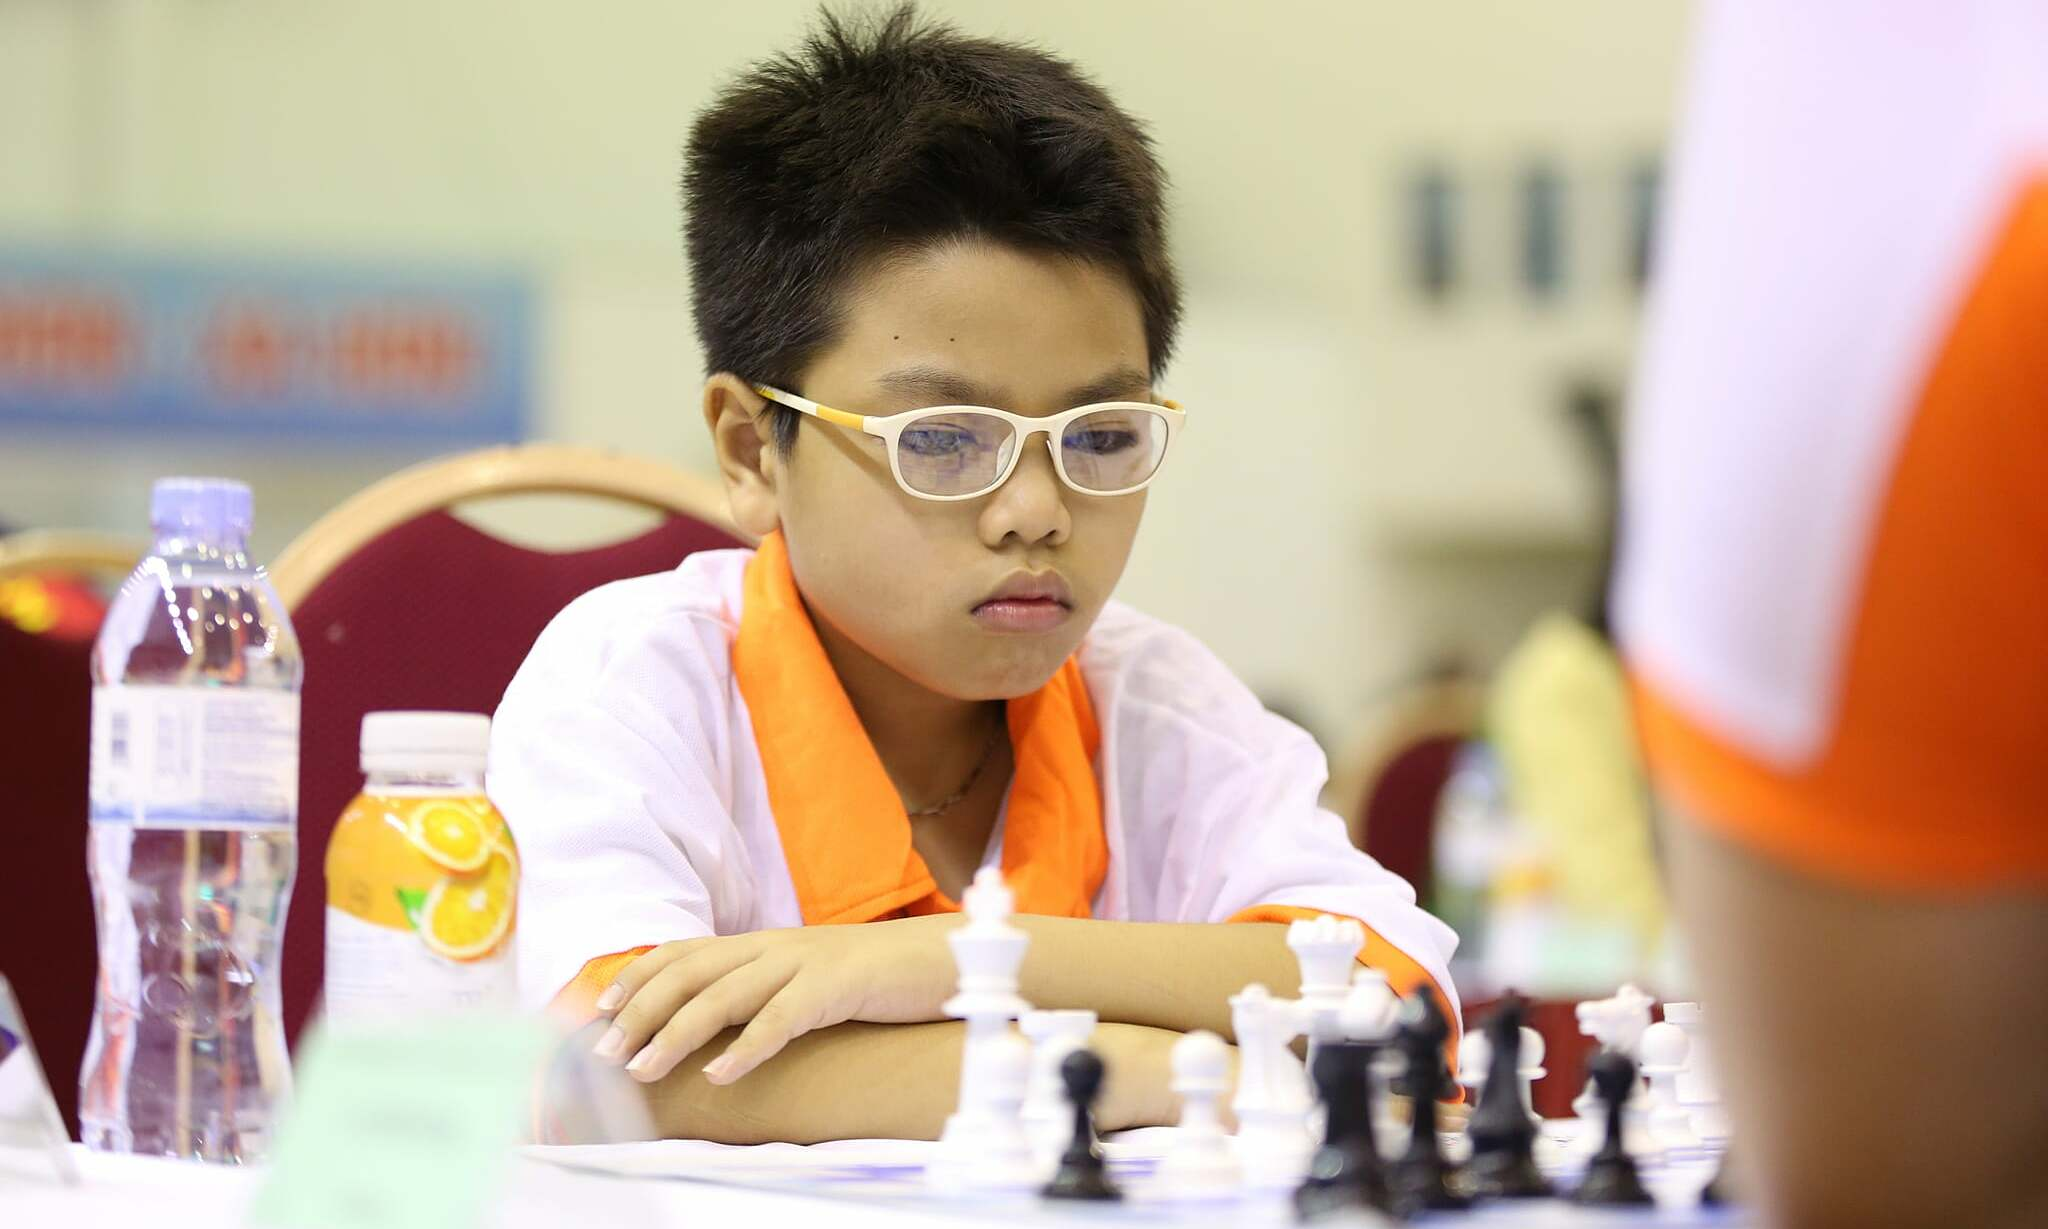 Player Dau Khuong Duy competes in the national chess tournament in 2020. Photo: Xuan Binh